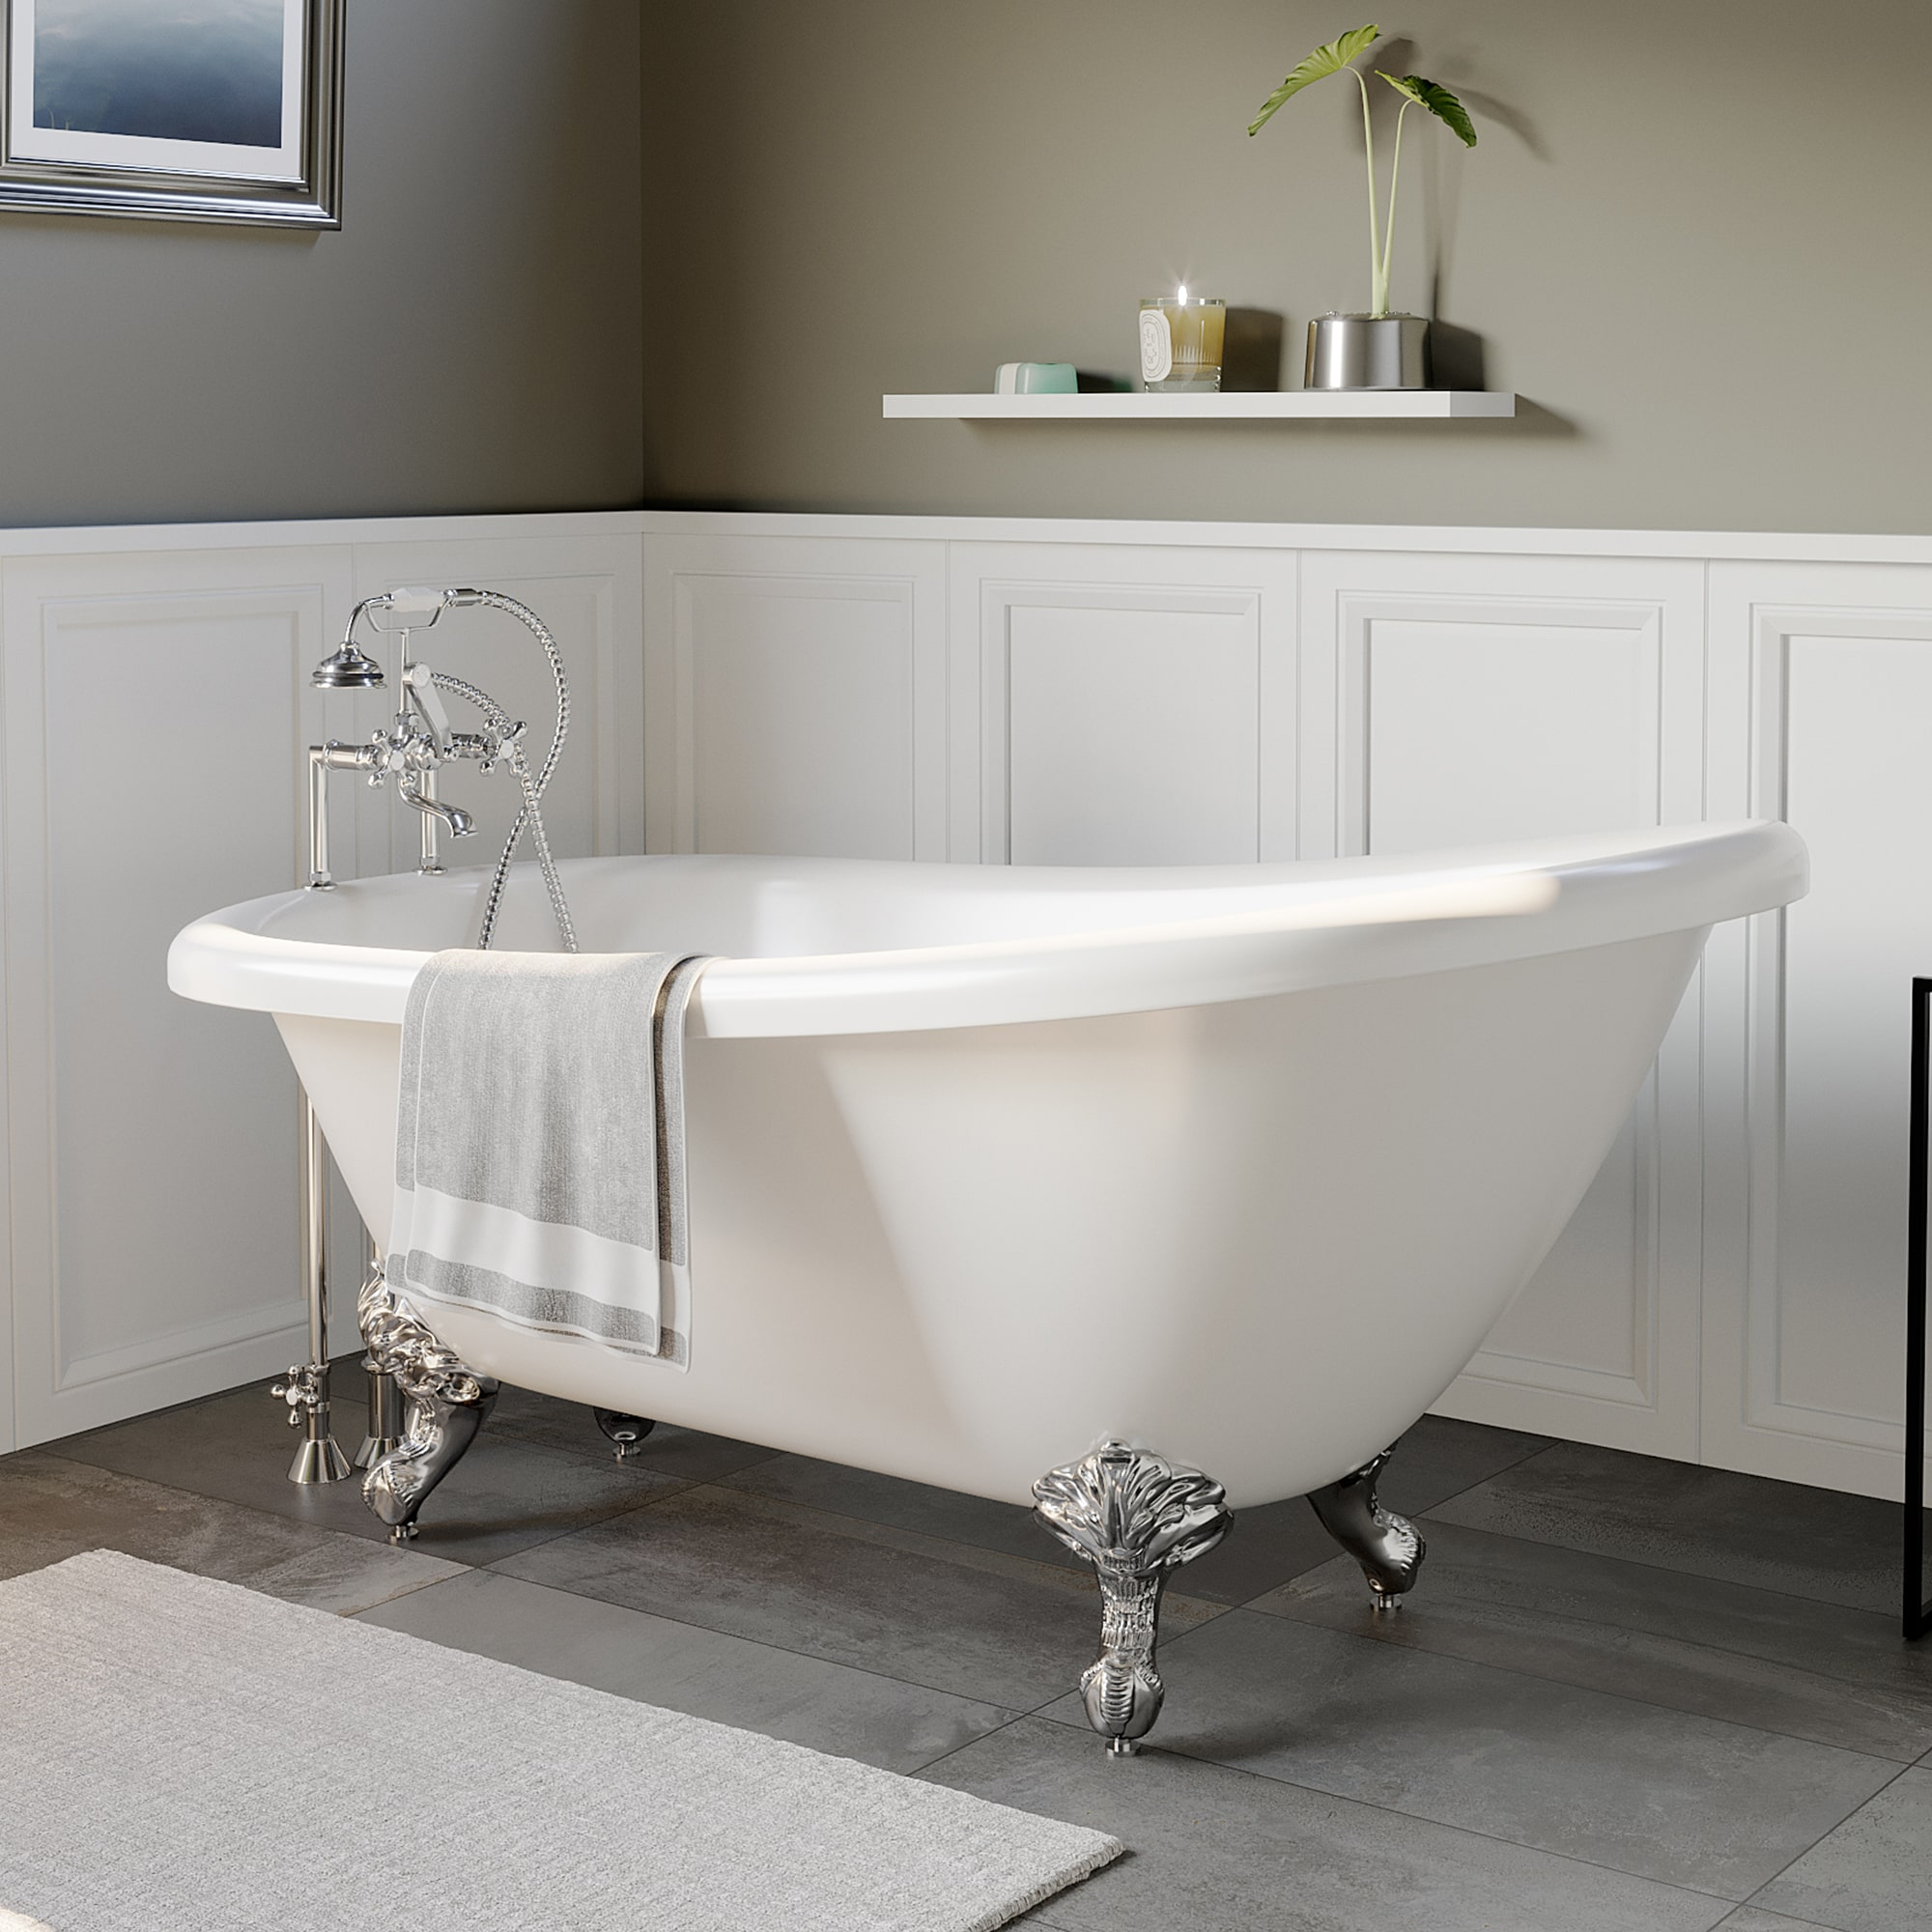 """Cast Iron Slipper Clawfoot Tub 61"""" X 30"""" with  7"""" Deck Mount Faucet Drillings and British Telephone Style Faucet Complete Polished Chrome Plumbing Package With Six Inch Deck Mount Risers"""